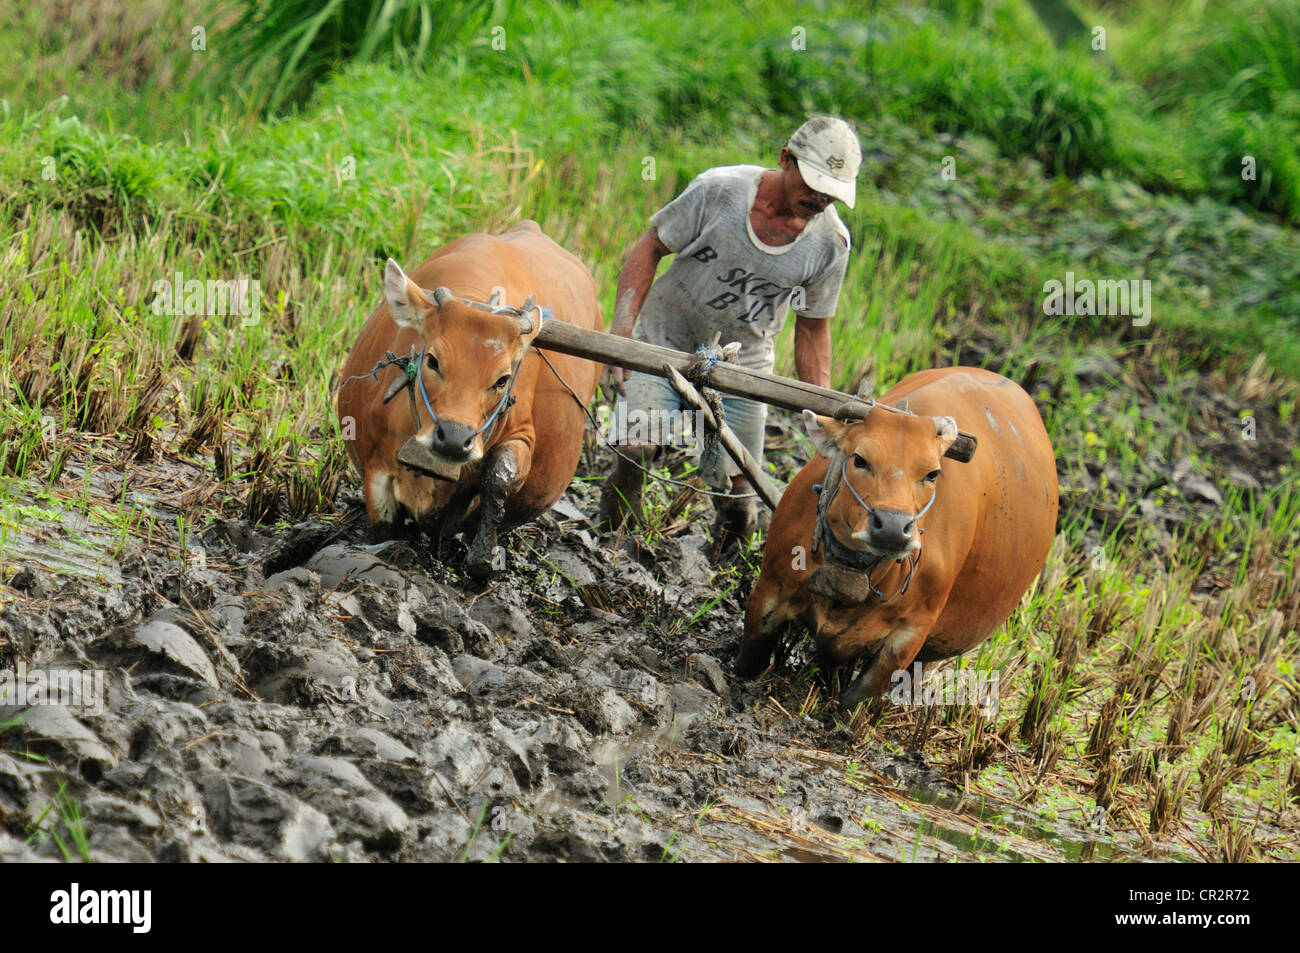 Cows jobs in the Tirtaganggaa rice terraces, Bali, Indonesia, Asia - Stock Image